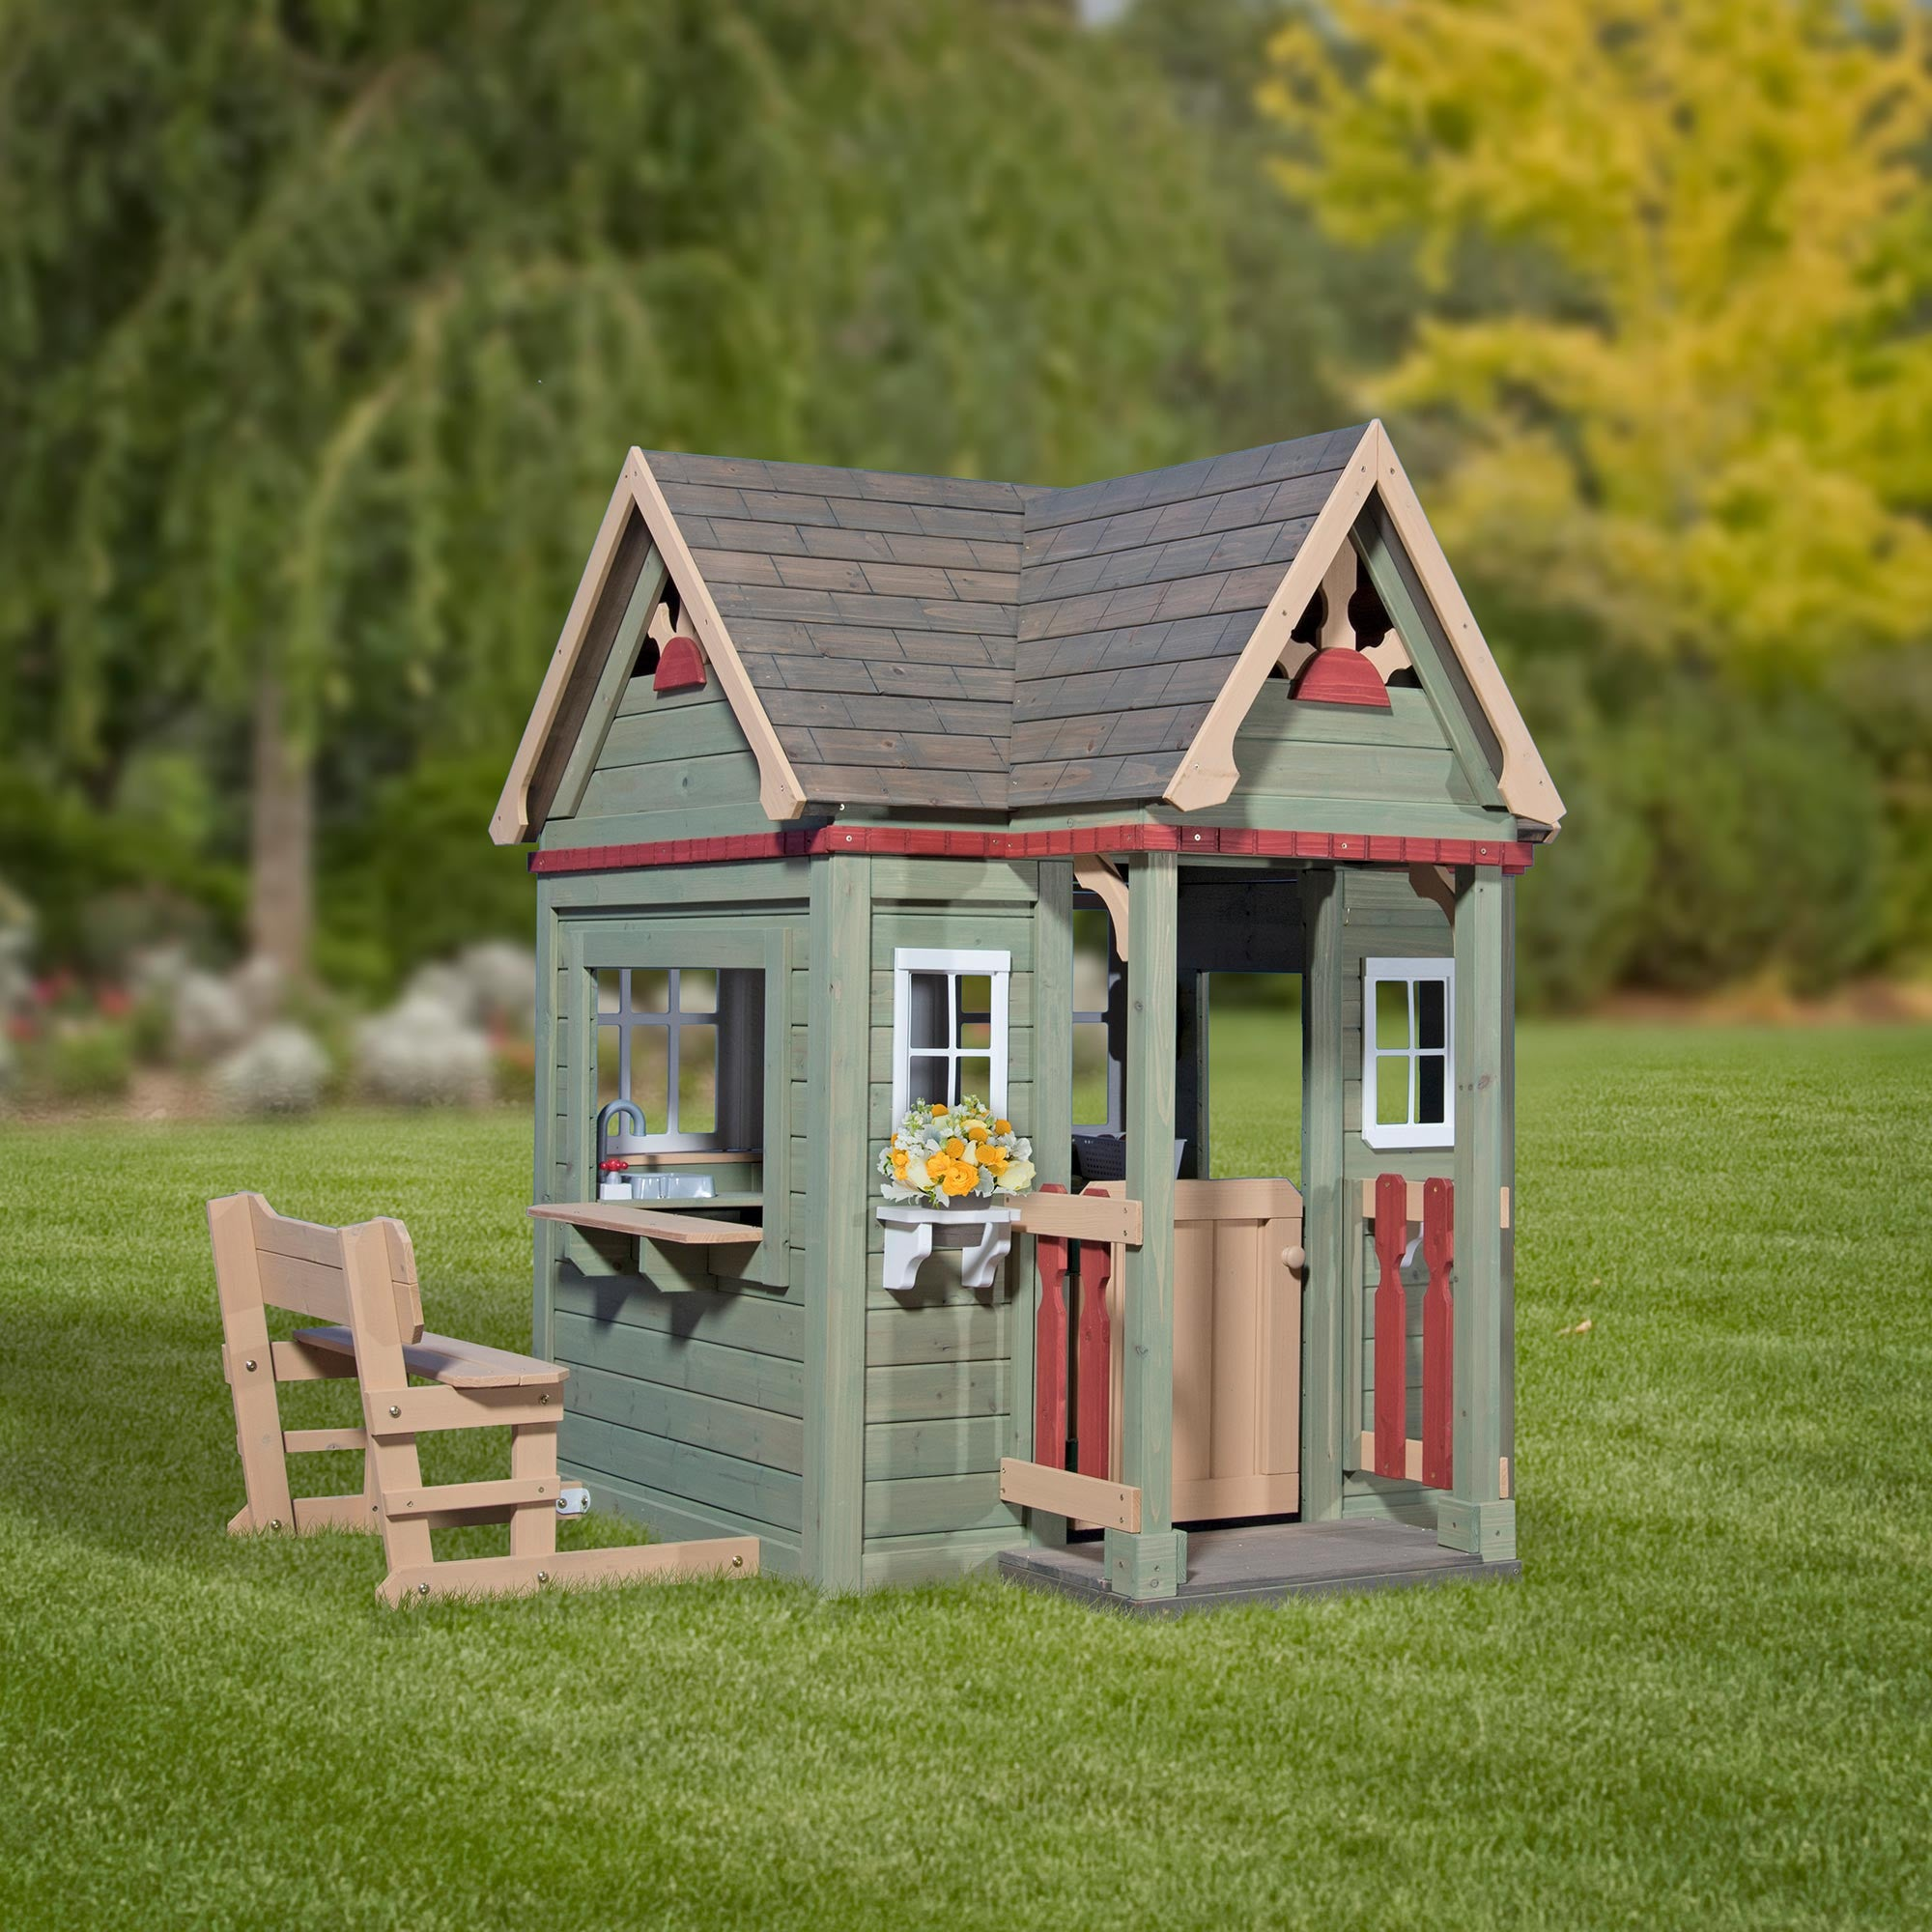 Backyard Discovery Cedar Playhouse Victorian Inn Wooden Playhouse Backyard  Discovery . Backyard Discovery Cedar Playhouse ...